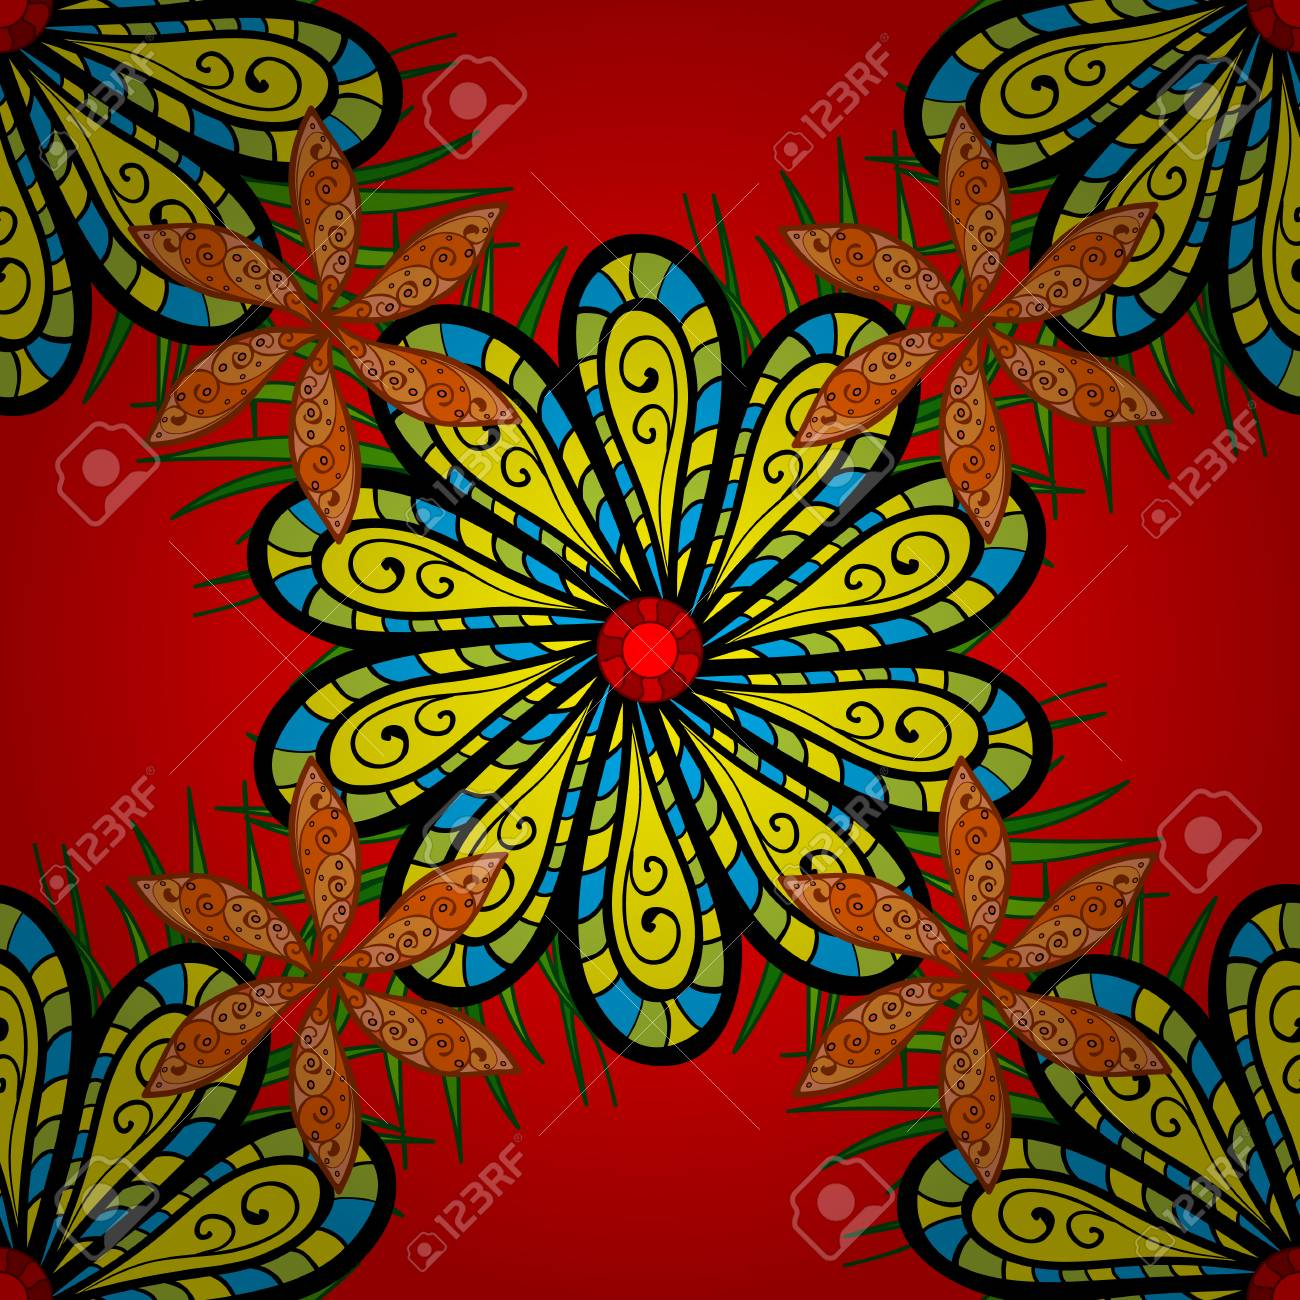 Mandala Flower Coloring Book For Adults Vector Illustration ...